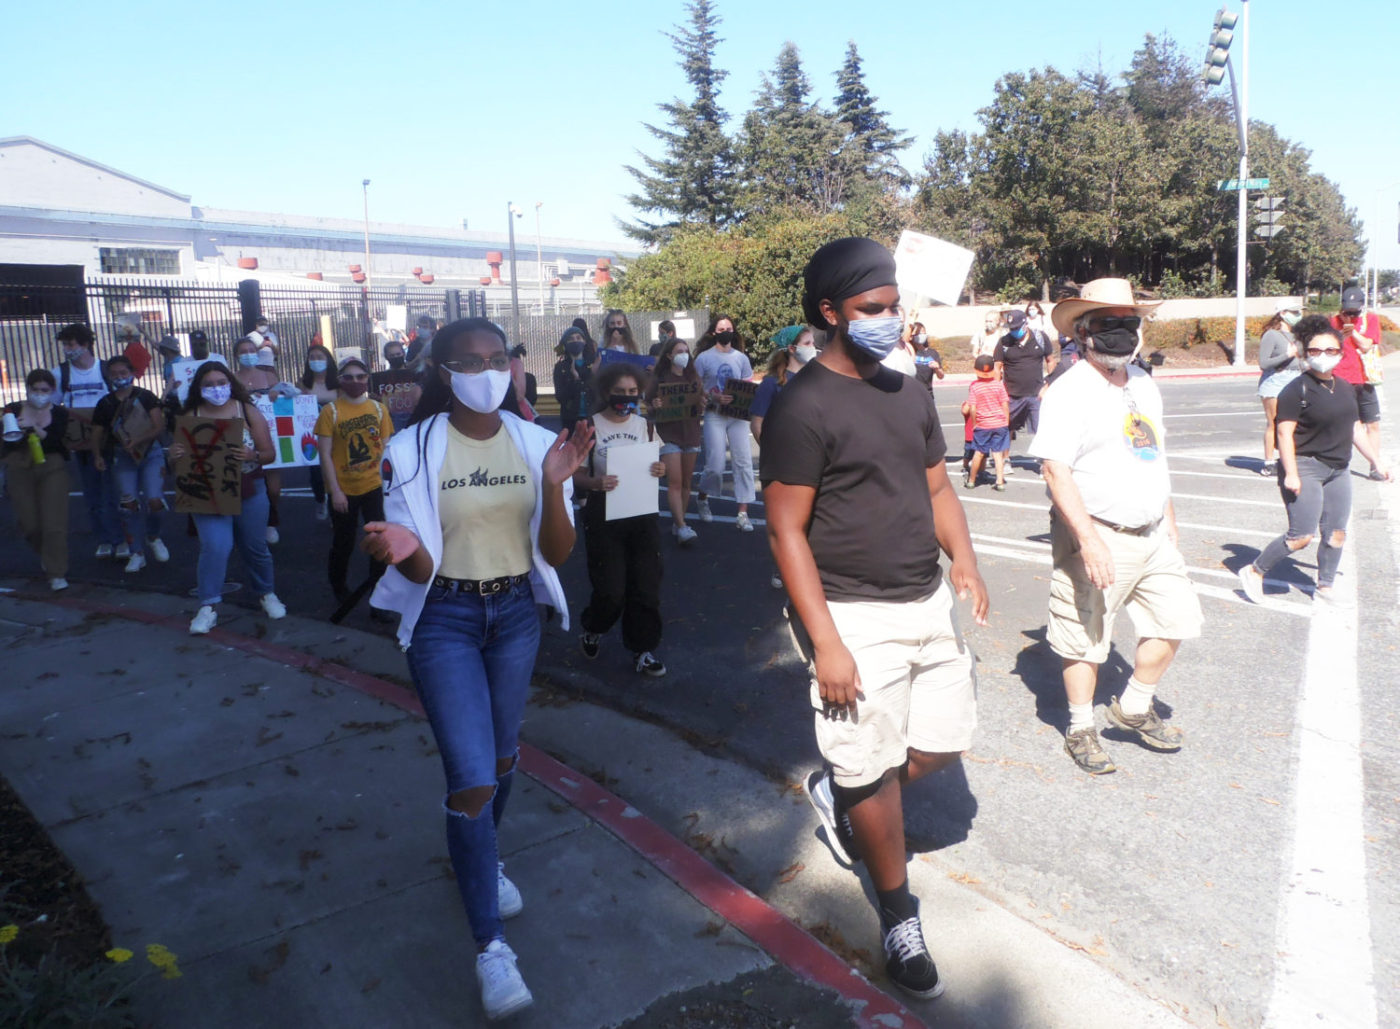 Youth-march-for-clean-environment-against-police-terrorism-in-Richmond-after-rally-at-Chevron-refinery-by-Baba-Jahahara-1400x1029, Finally! Baba Jalil will be freed!, Culture Currents